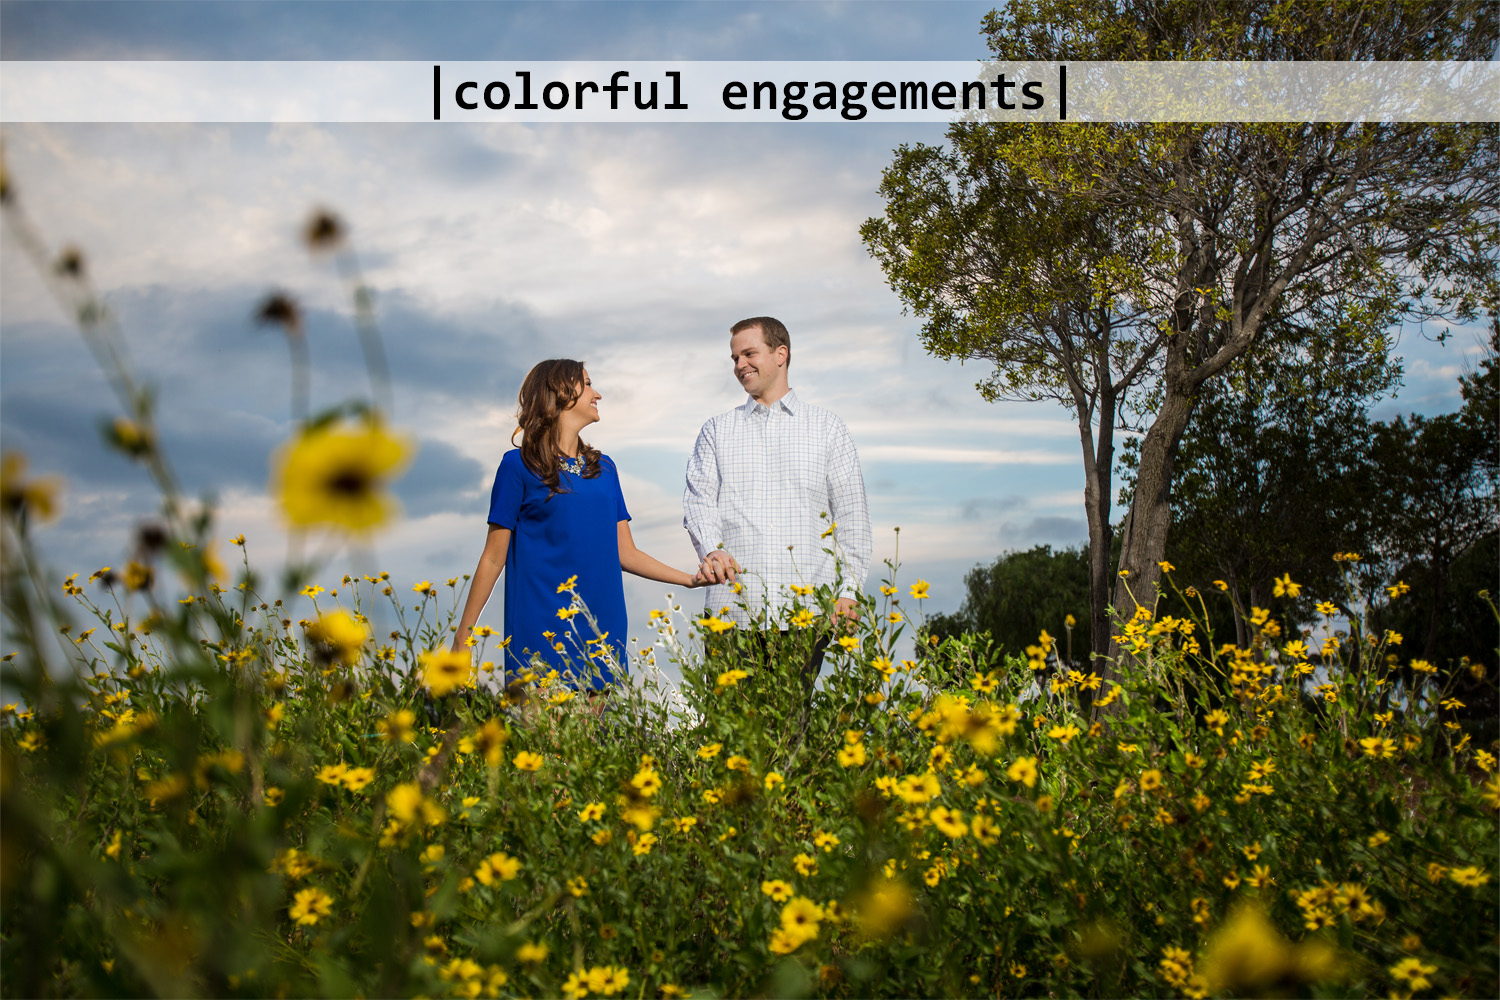 Colorful Engagements